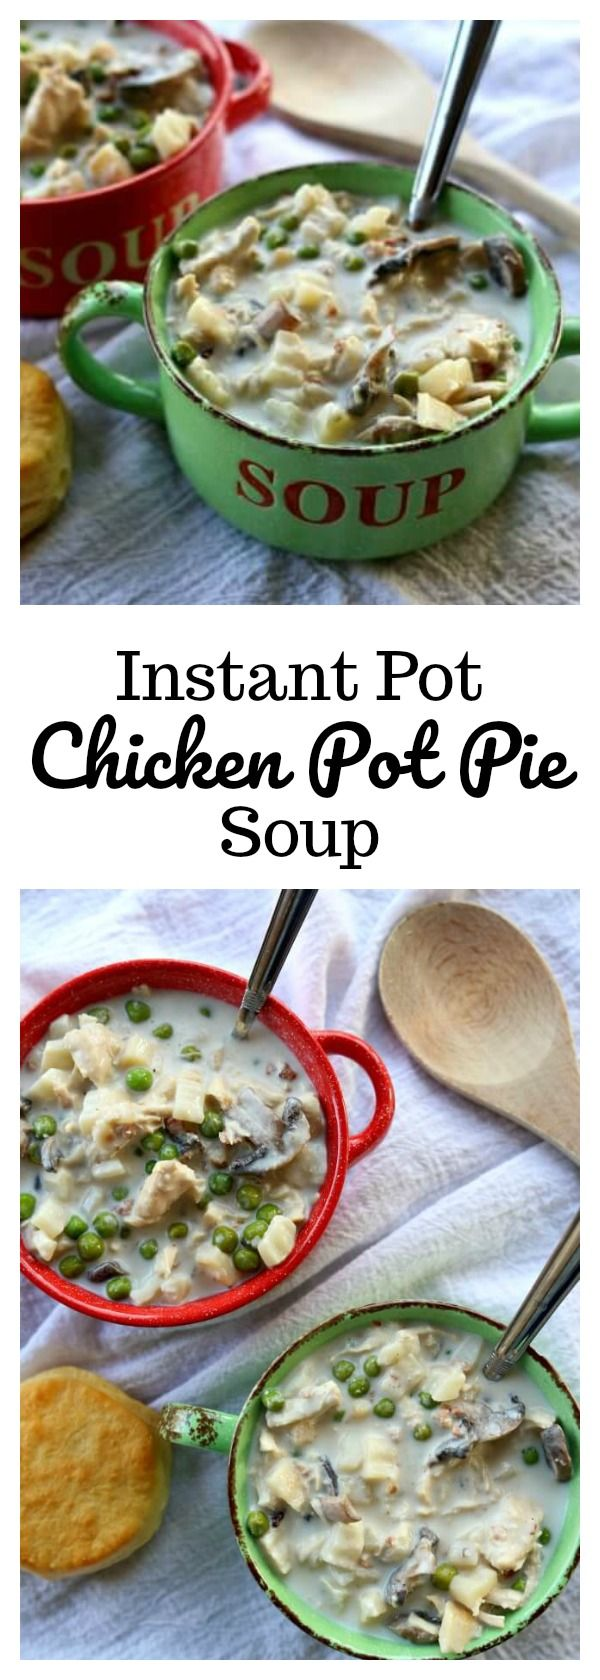 Instant Pot Chicken Pot Pie Soup–all the flavors from chicken pot pie in a soup! This super easy recipe is made in minutes in your electric pressure cooker. It can be made with raw chicken or leftover cooked turkey or chicken. Serve the soup topped with a biscuit to make it feel like the crust of a pot pie.